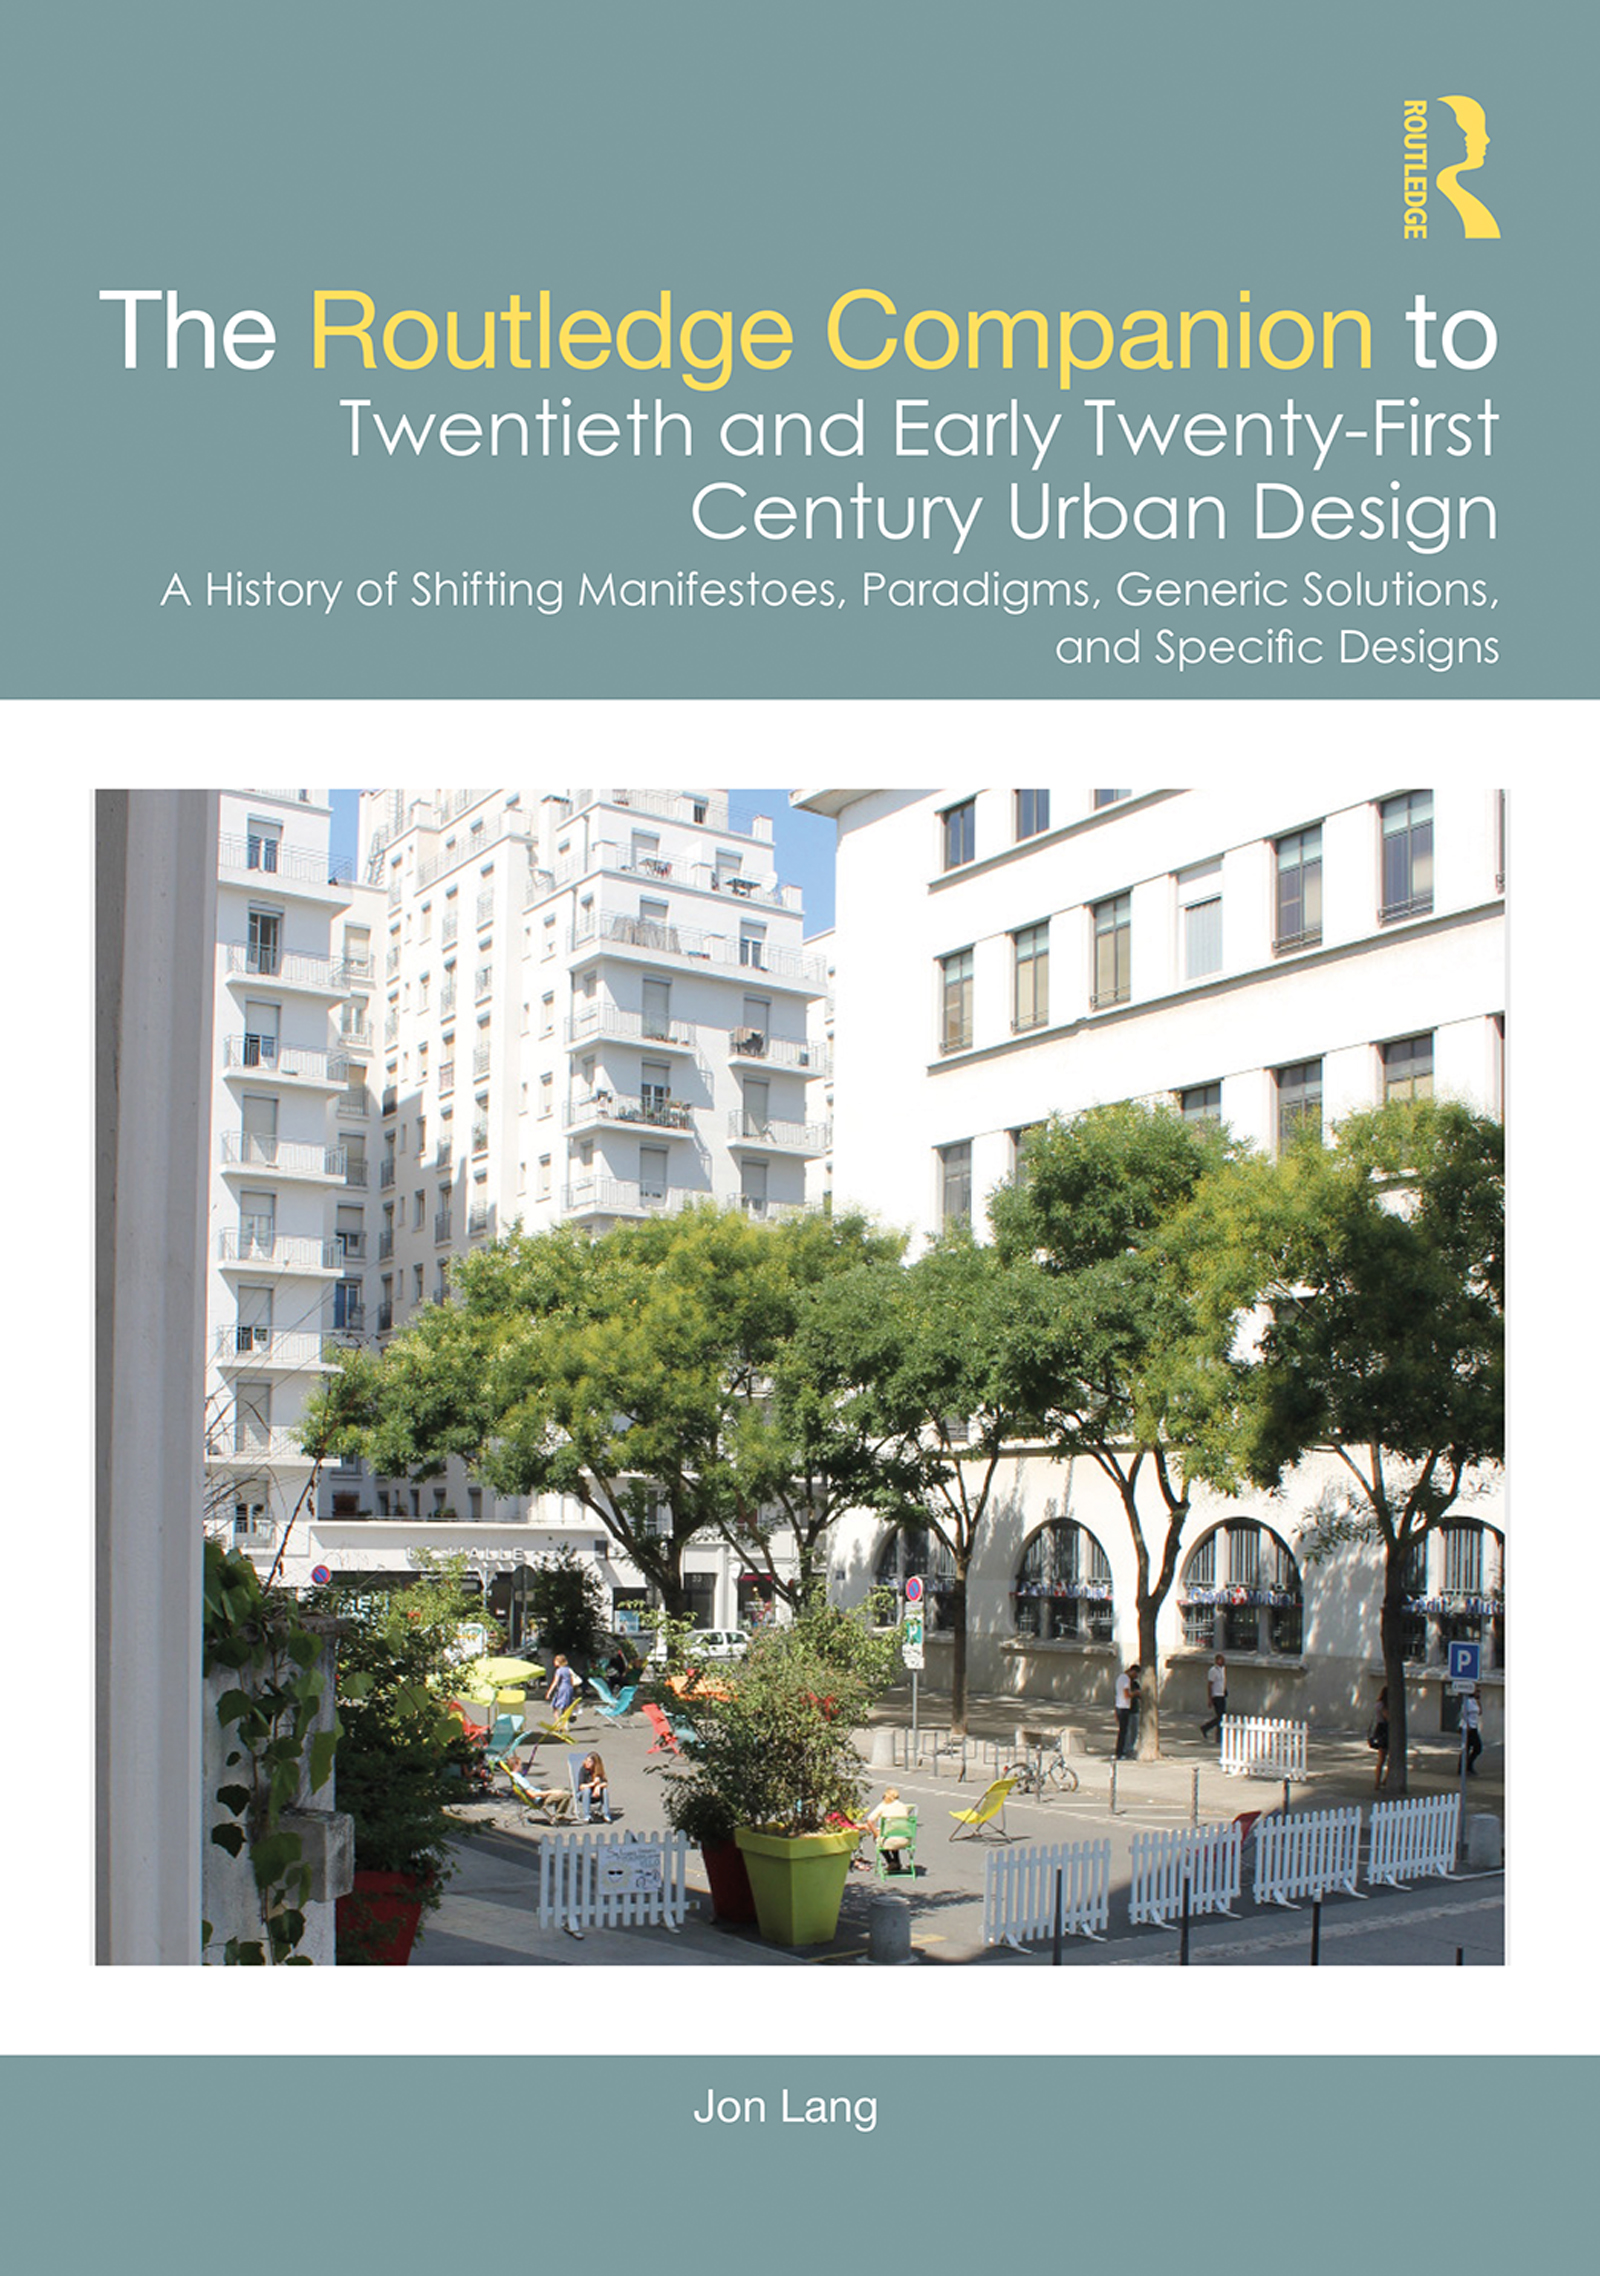 The Routledge Companion to Twentieth and Early Twenty-First Century Urban Design